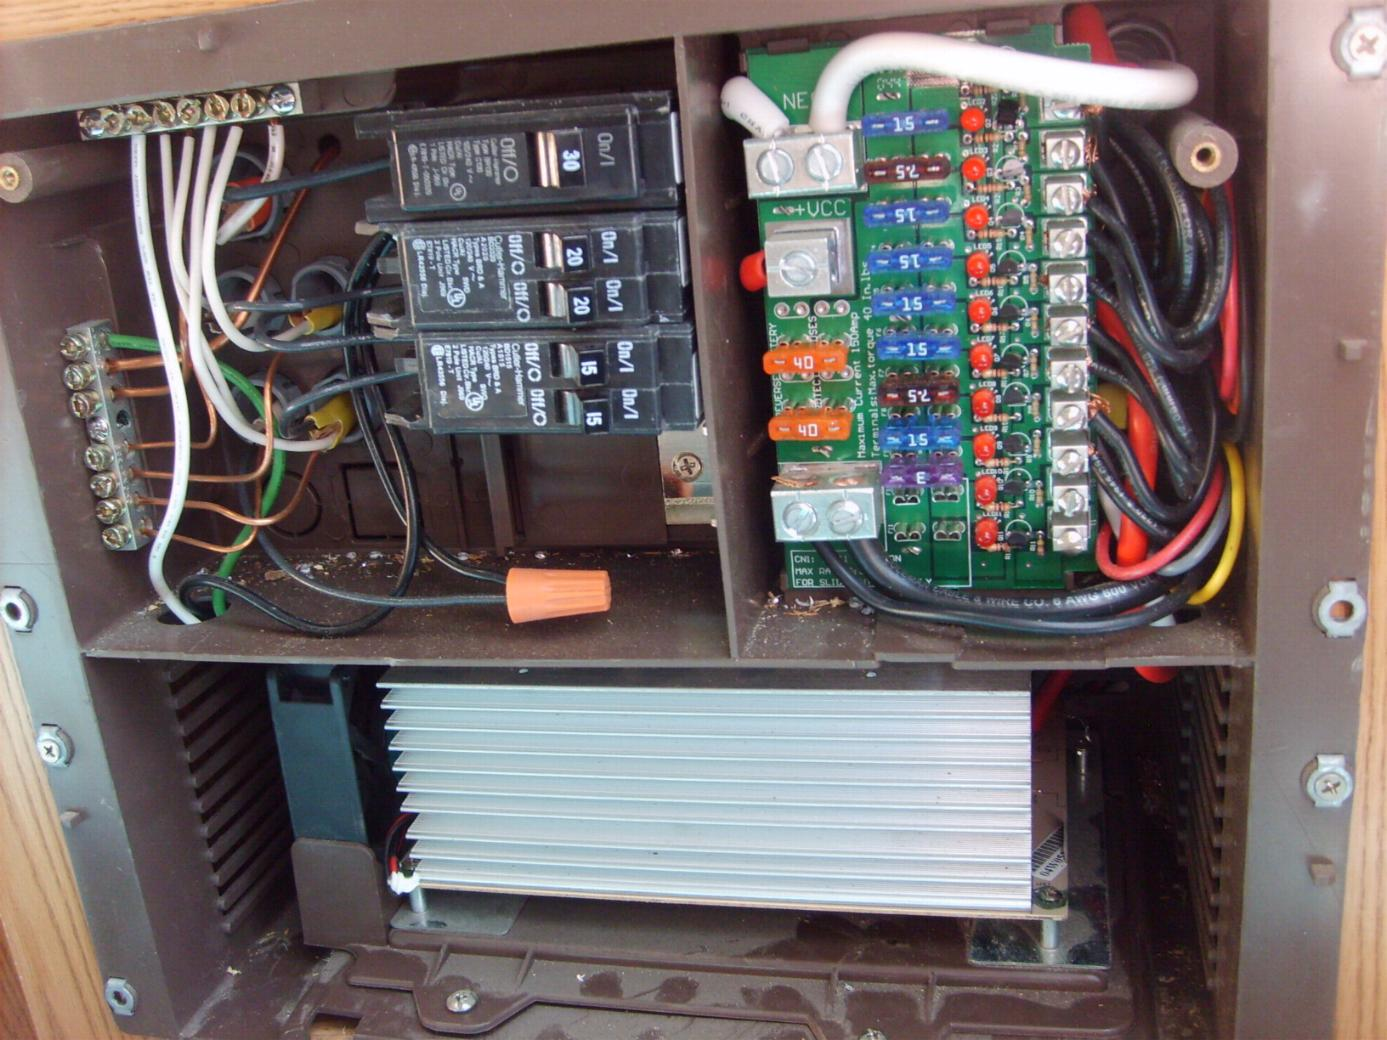 img_429461_2_e9e5566ce3b173d45d5796cbe96e8b33 battery reverse polarity problem 19xud jayco rv owners forum wfco wf8735p wiring diagram at gsmx.co